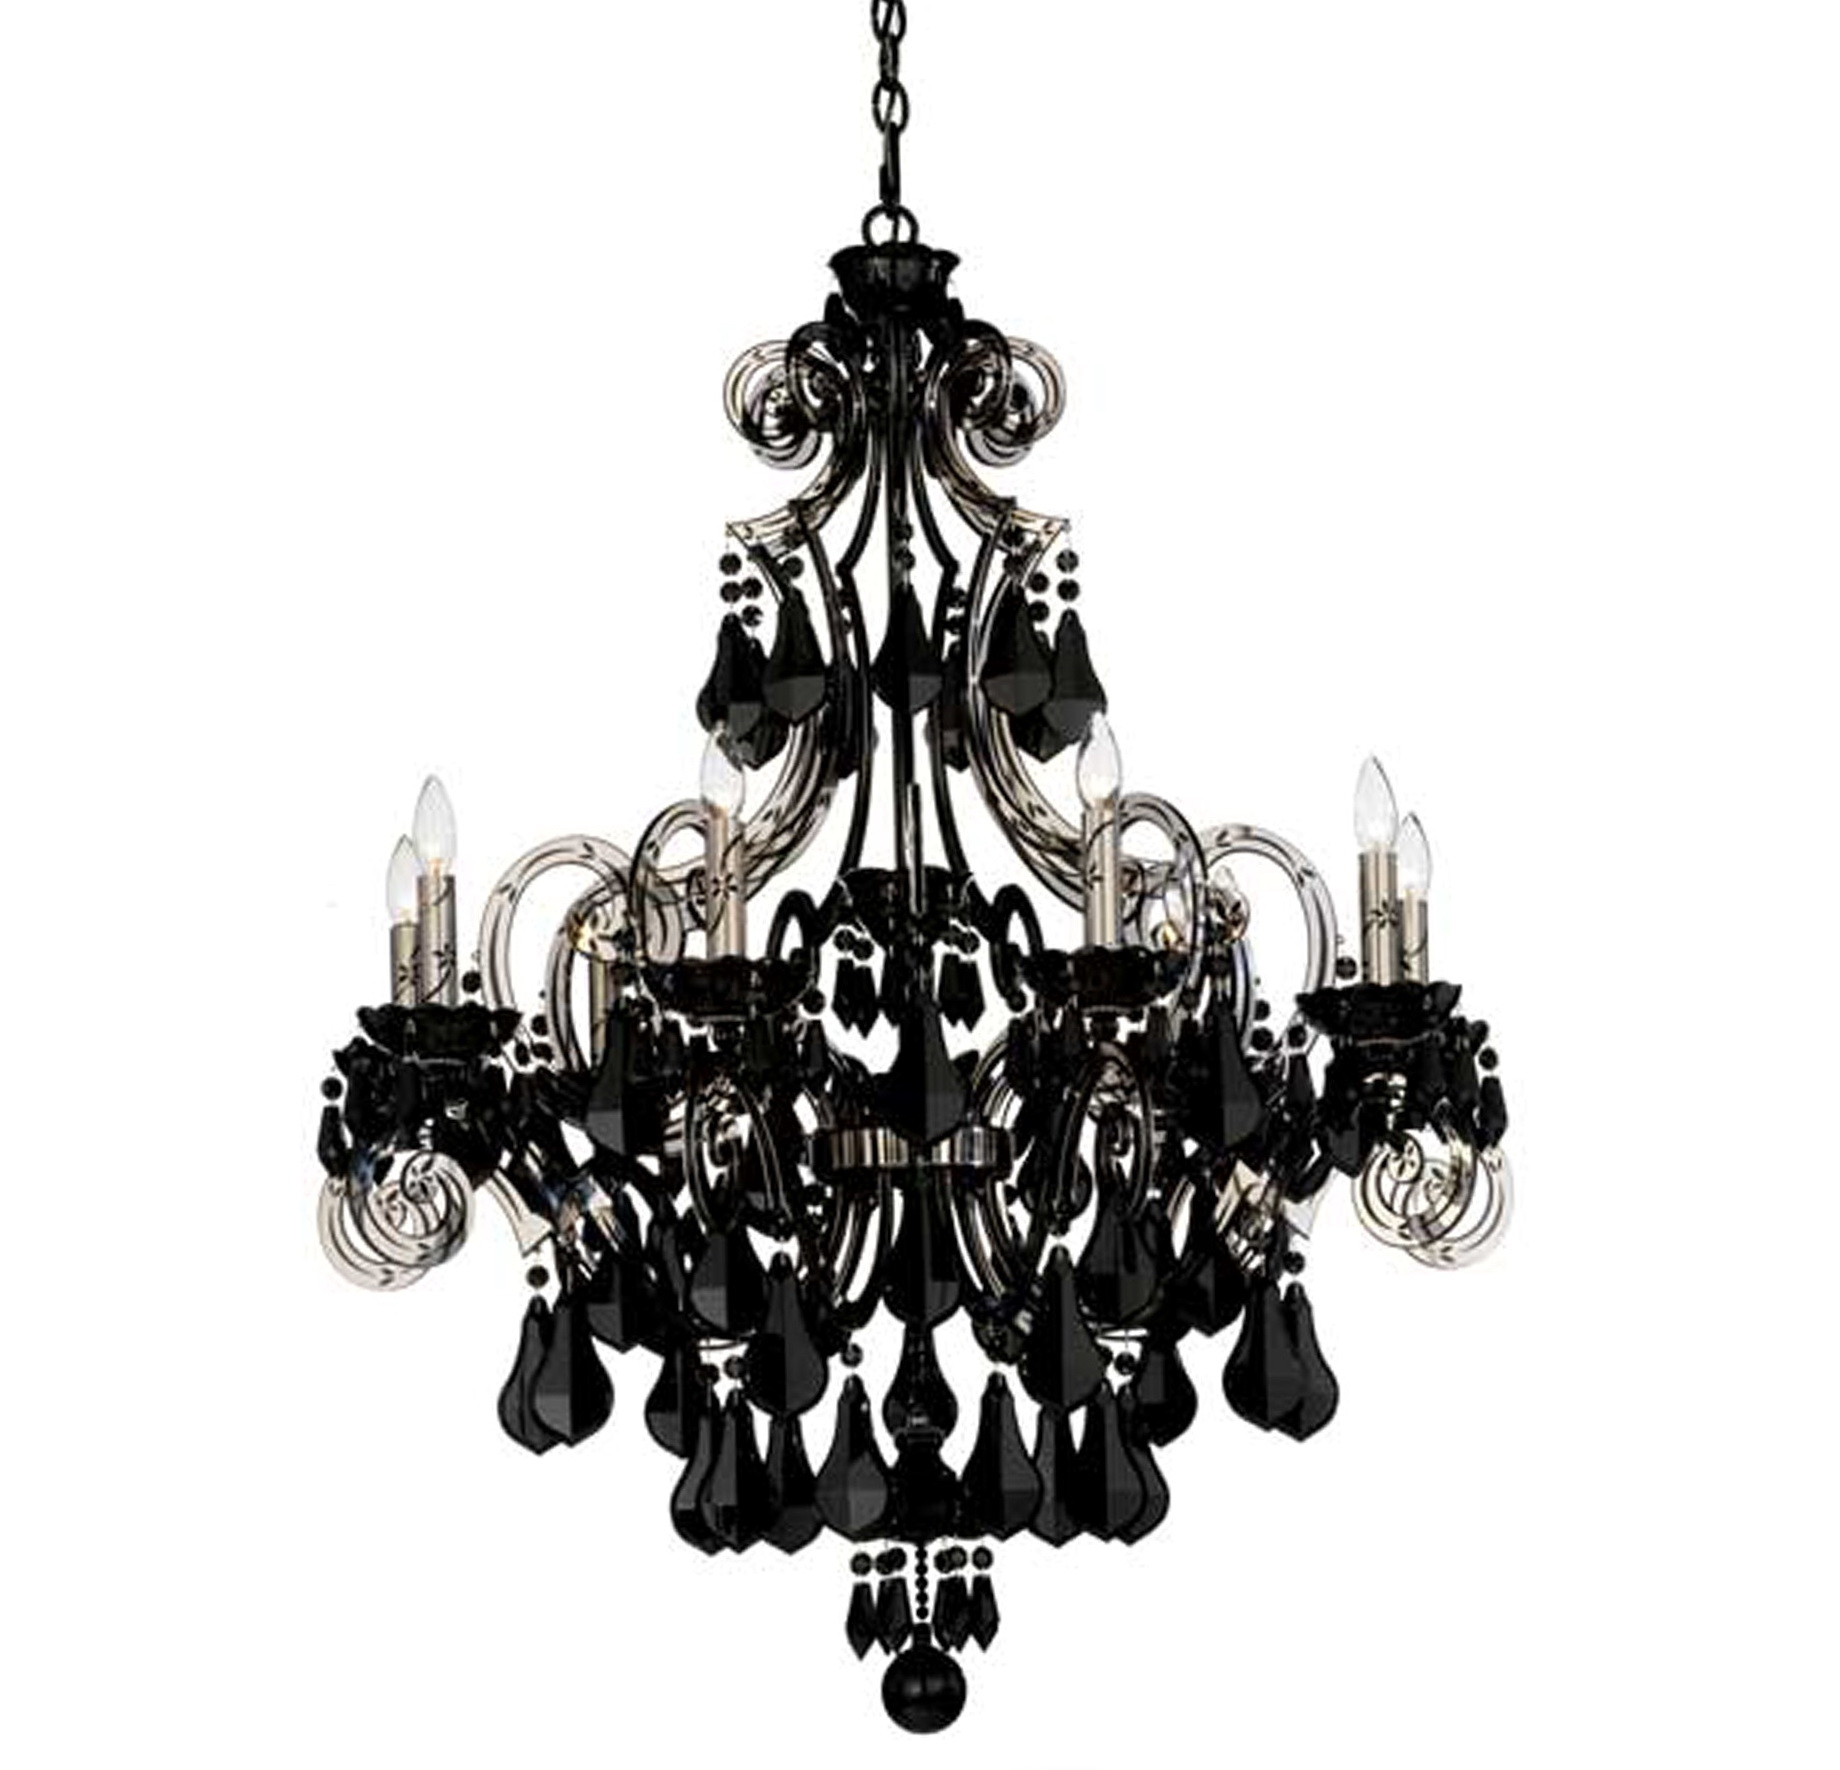 Chandelier Astounding Black Glass Chandelier Glass Ball With Black Glass Chandeliers (#7 of 12)